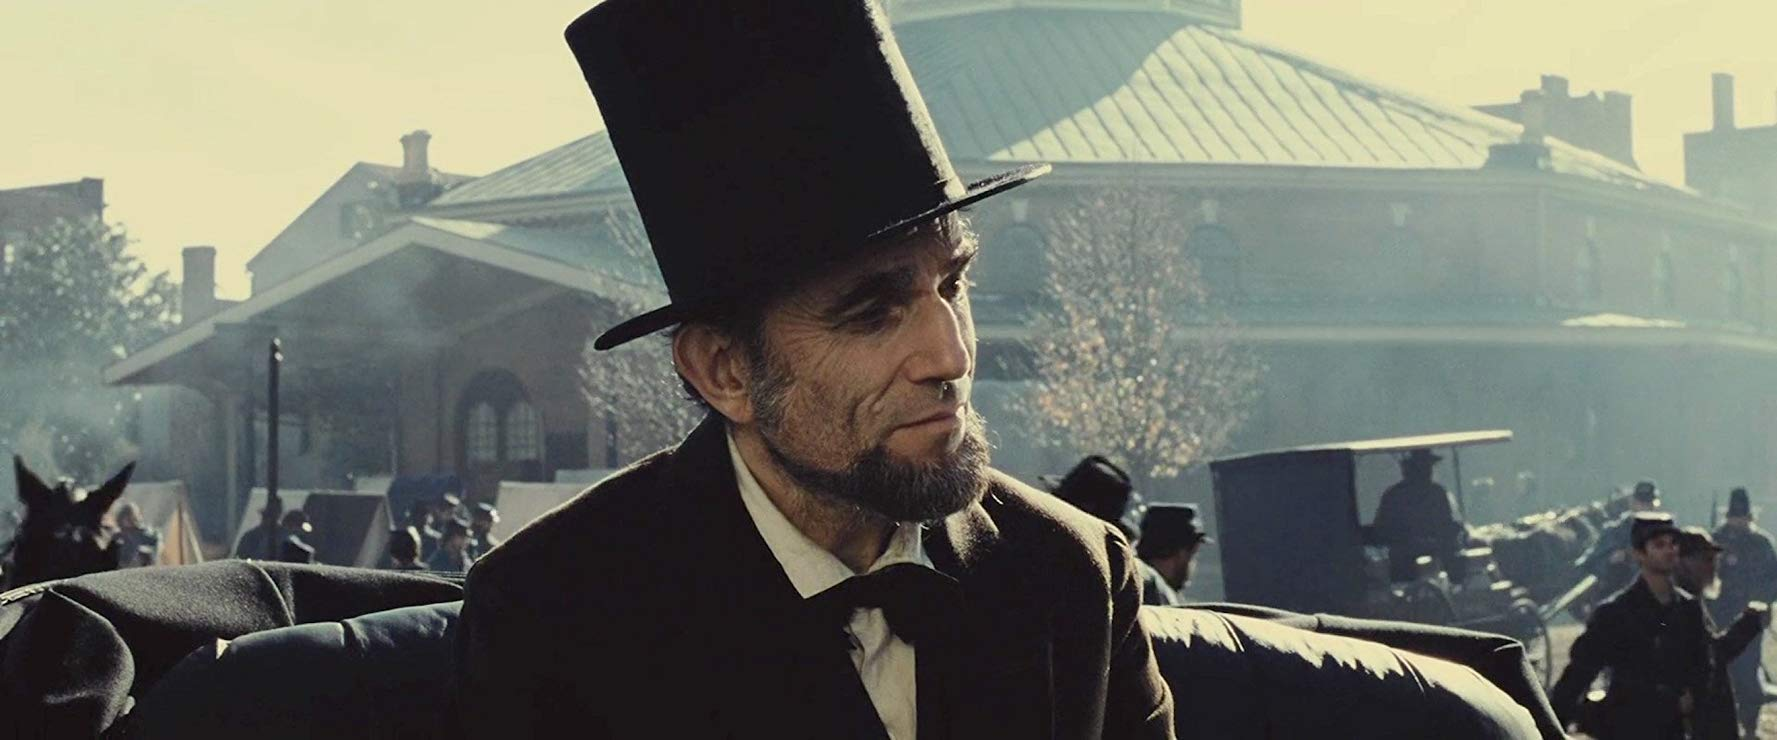 Daniel Day-Lewis stars as Abraham Lincoln in Steven Spielberg's Lincoln